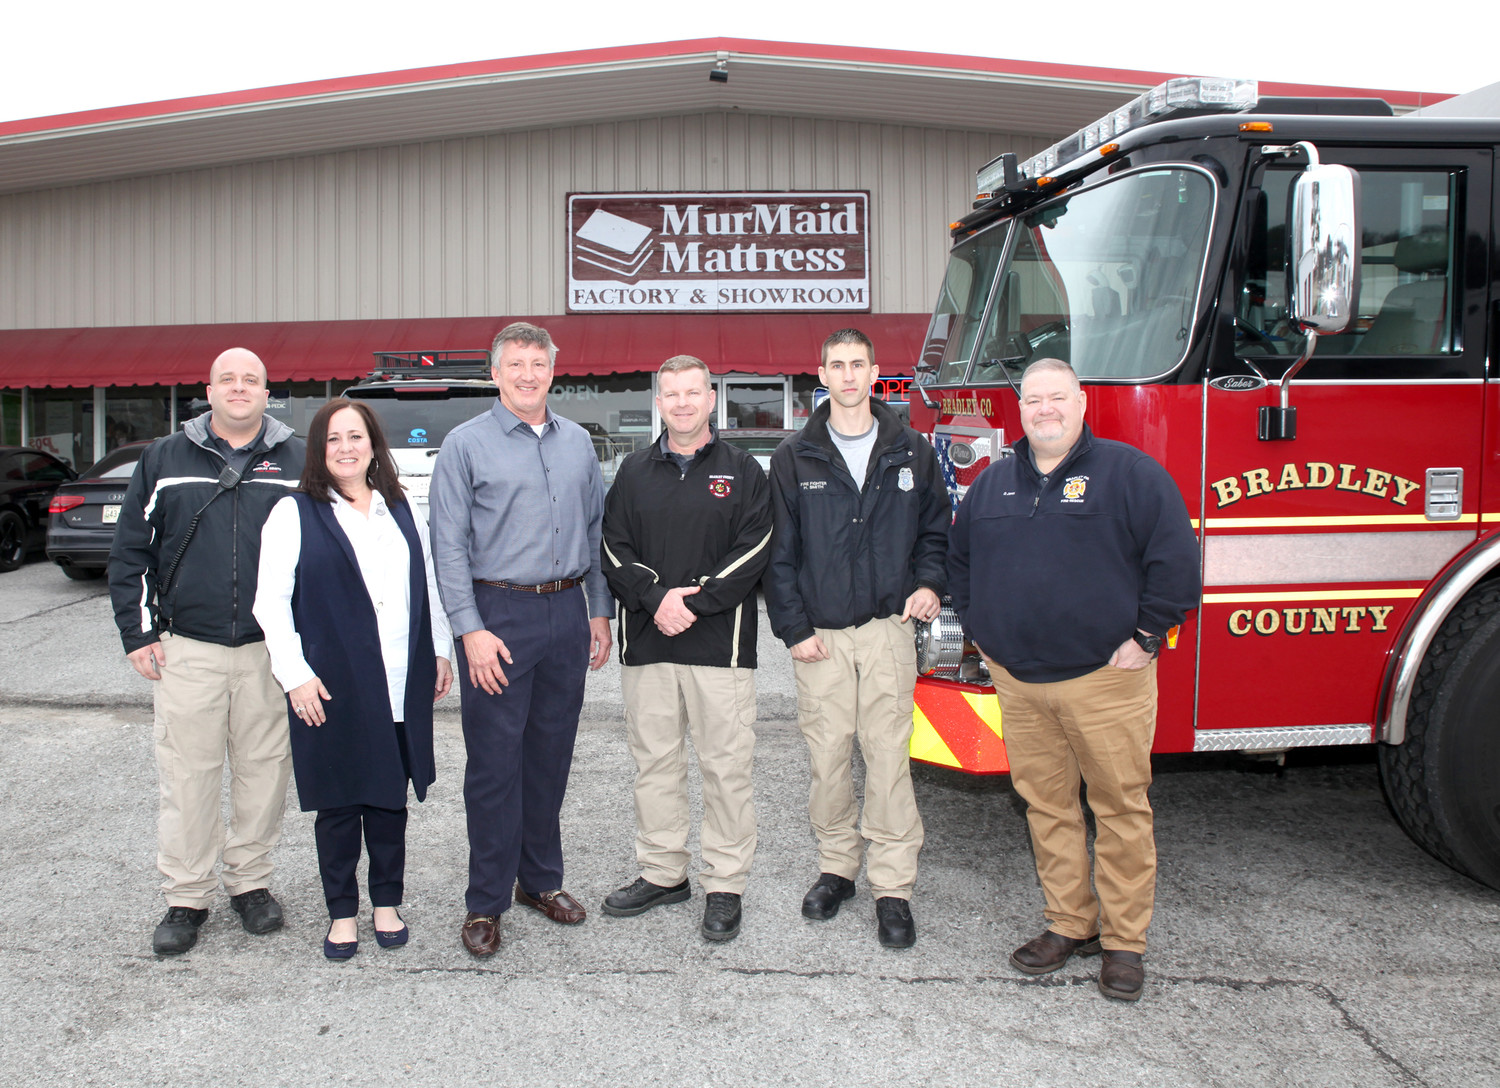 MURMAID MATTRESS DONATED four mattress sets to the Bradley County Fire-Rescue on Thursday.  The BCFR was in need of more beds because of recent expansions to their ranks and the shifting around of firefighters. From left are Engineer Robert Cross, MurMaid store manager Lisa Bell, MurMaid owner Roger Pickett, Chief Shawn Fairbanks, and Firefighters James Gray and Dustin Jones.